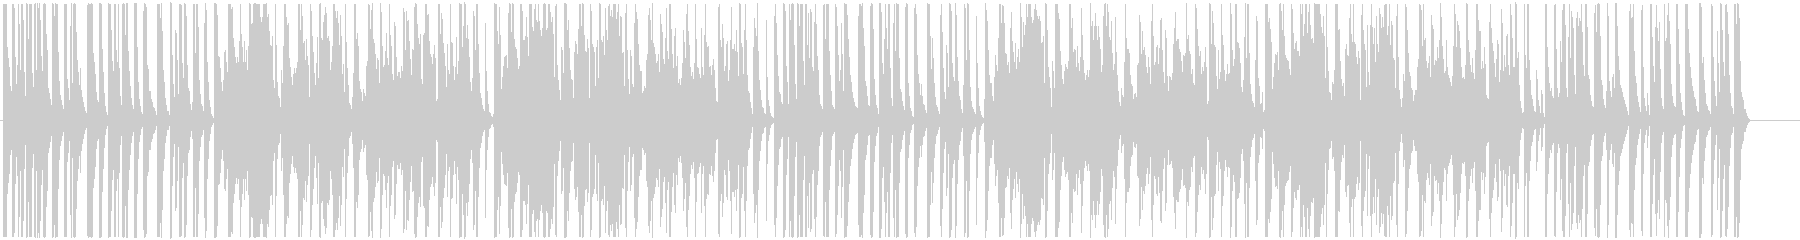 Bright and light Japanese style BGM's unreproduced waveform